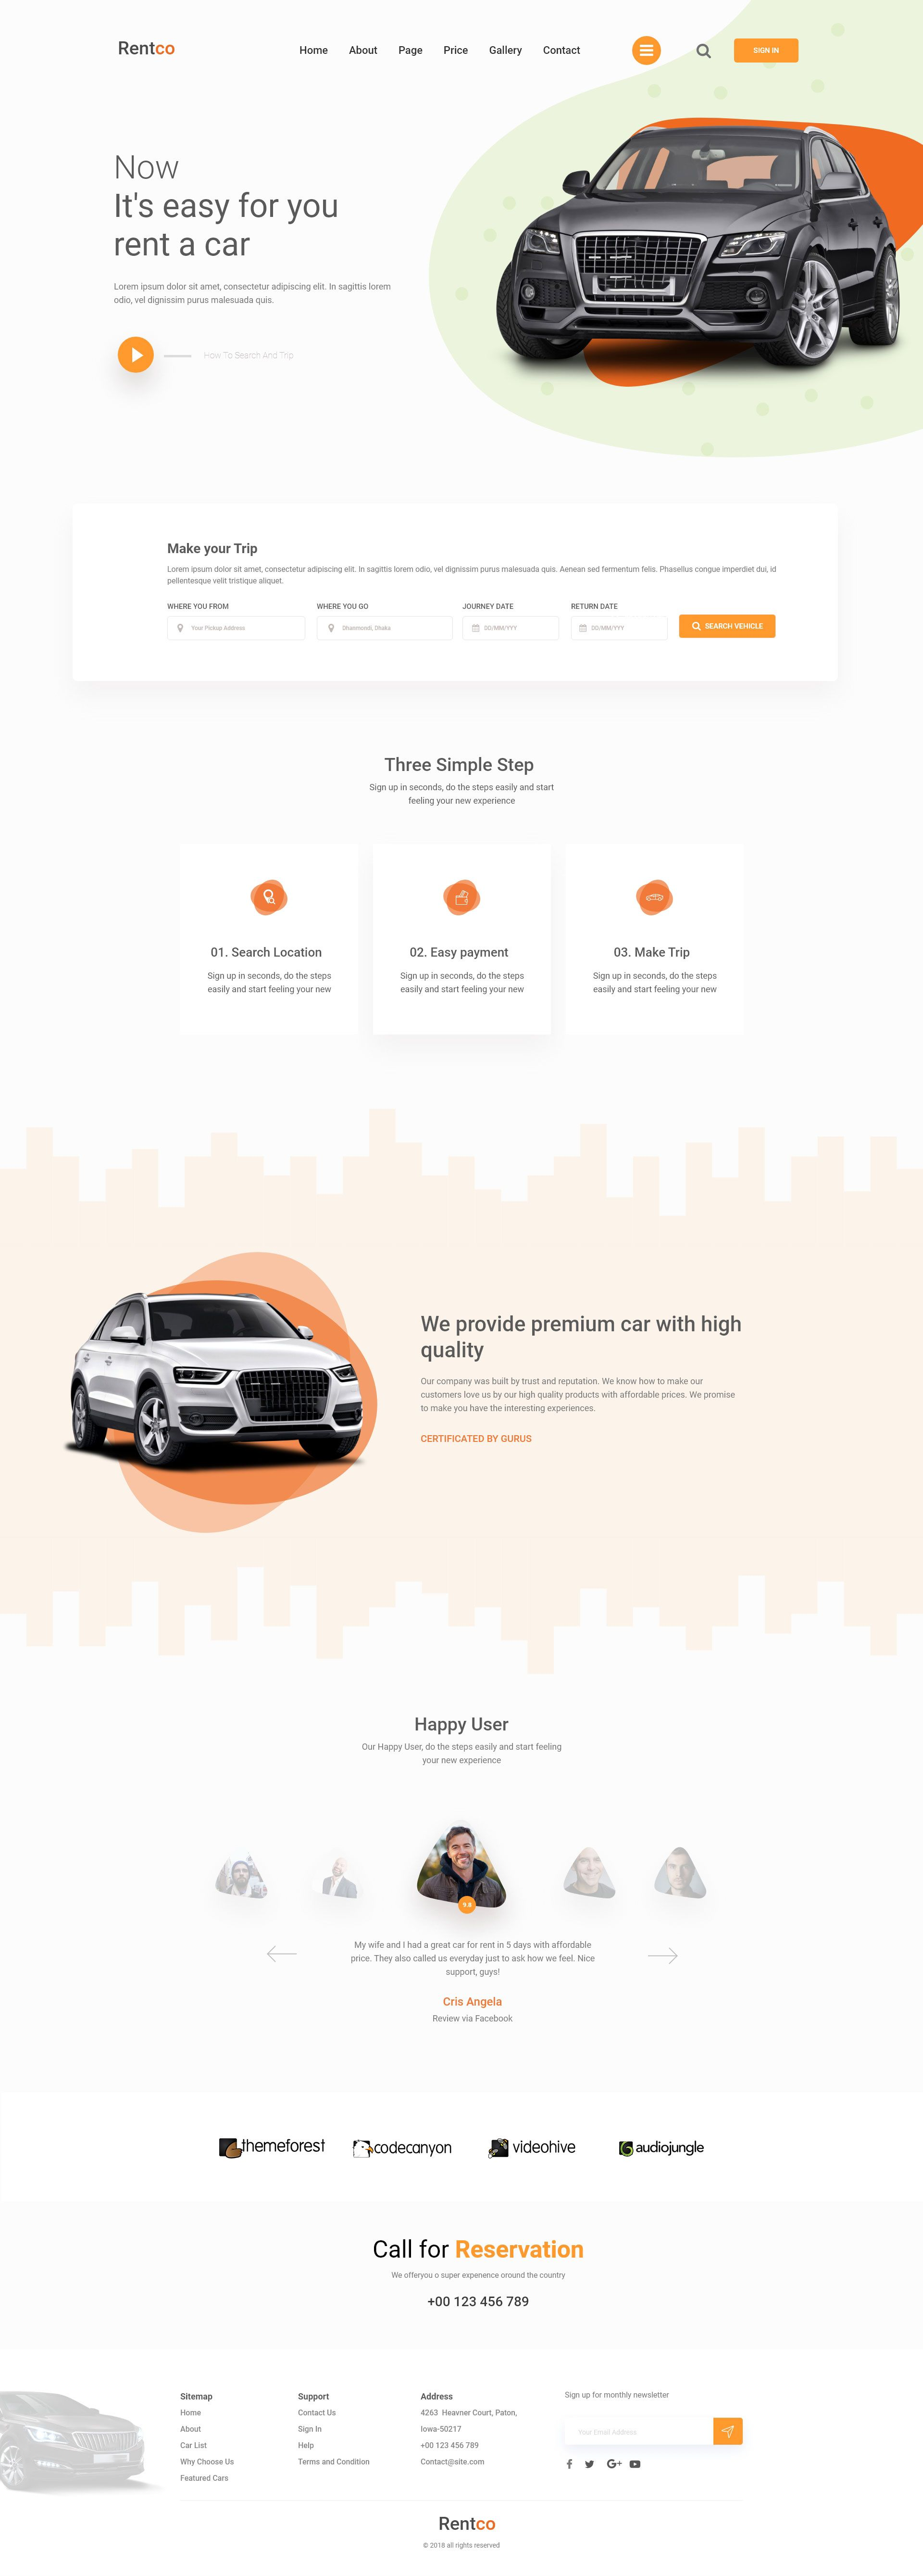 Rentco - Car Rental Landing Page